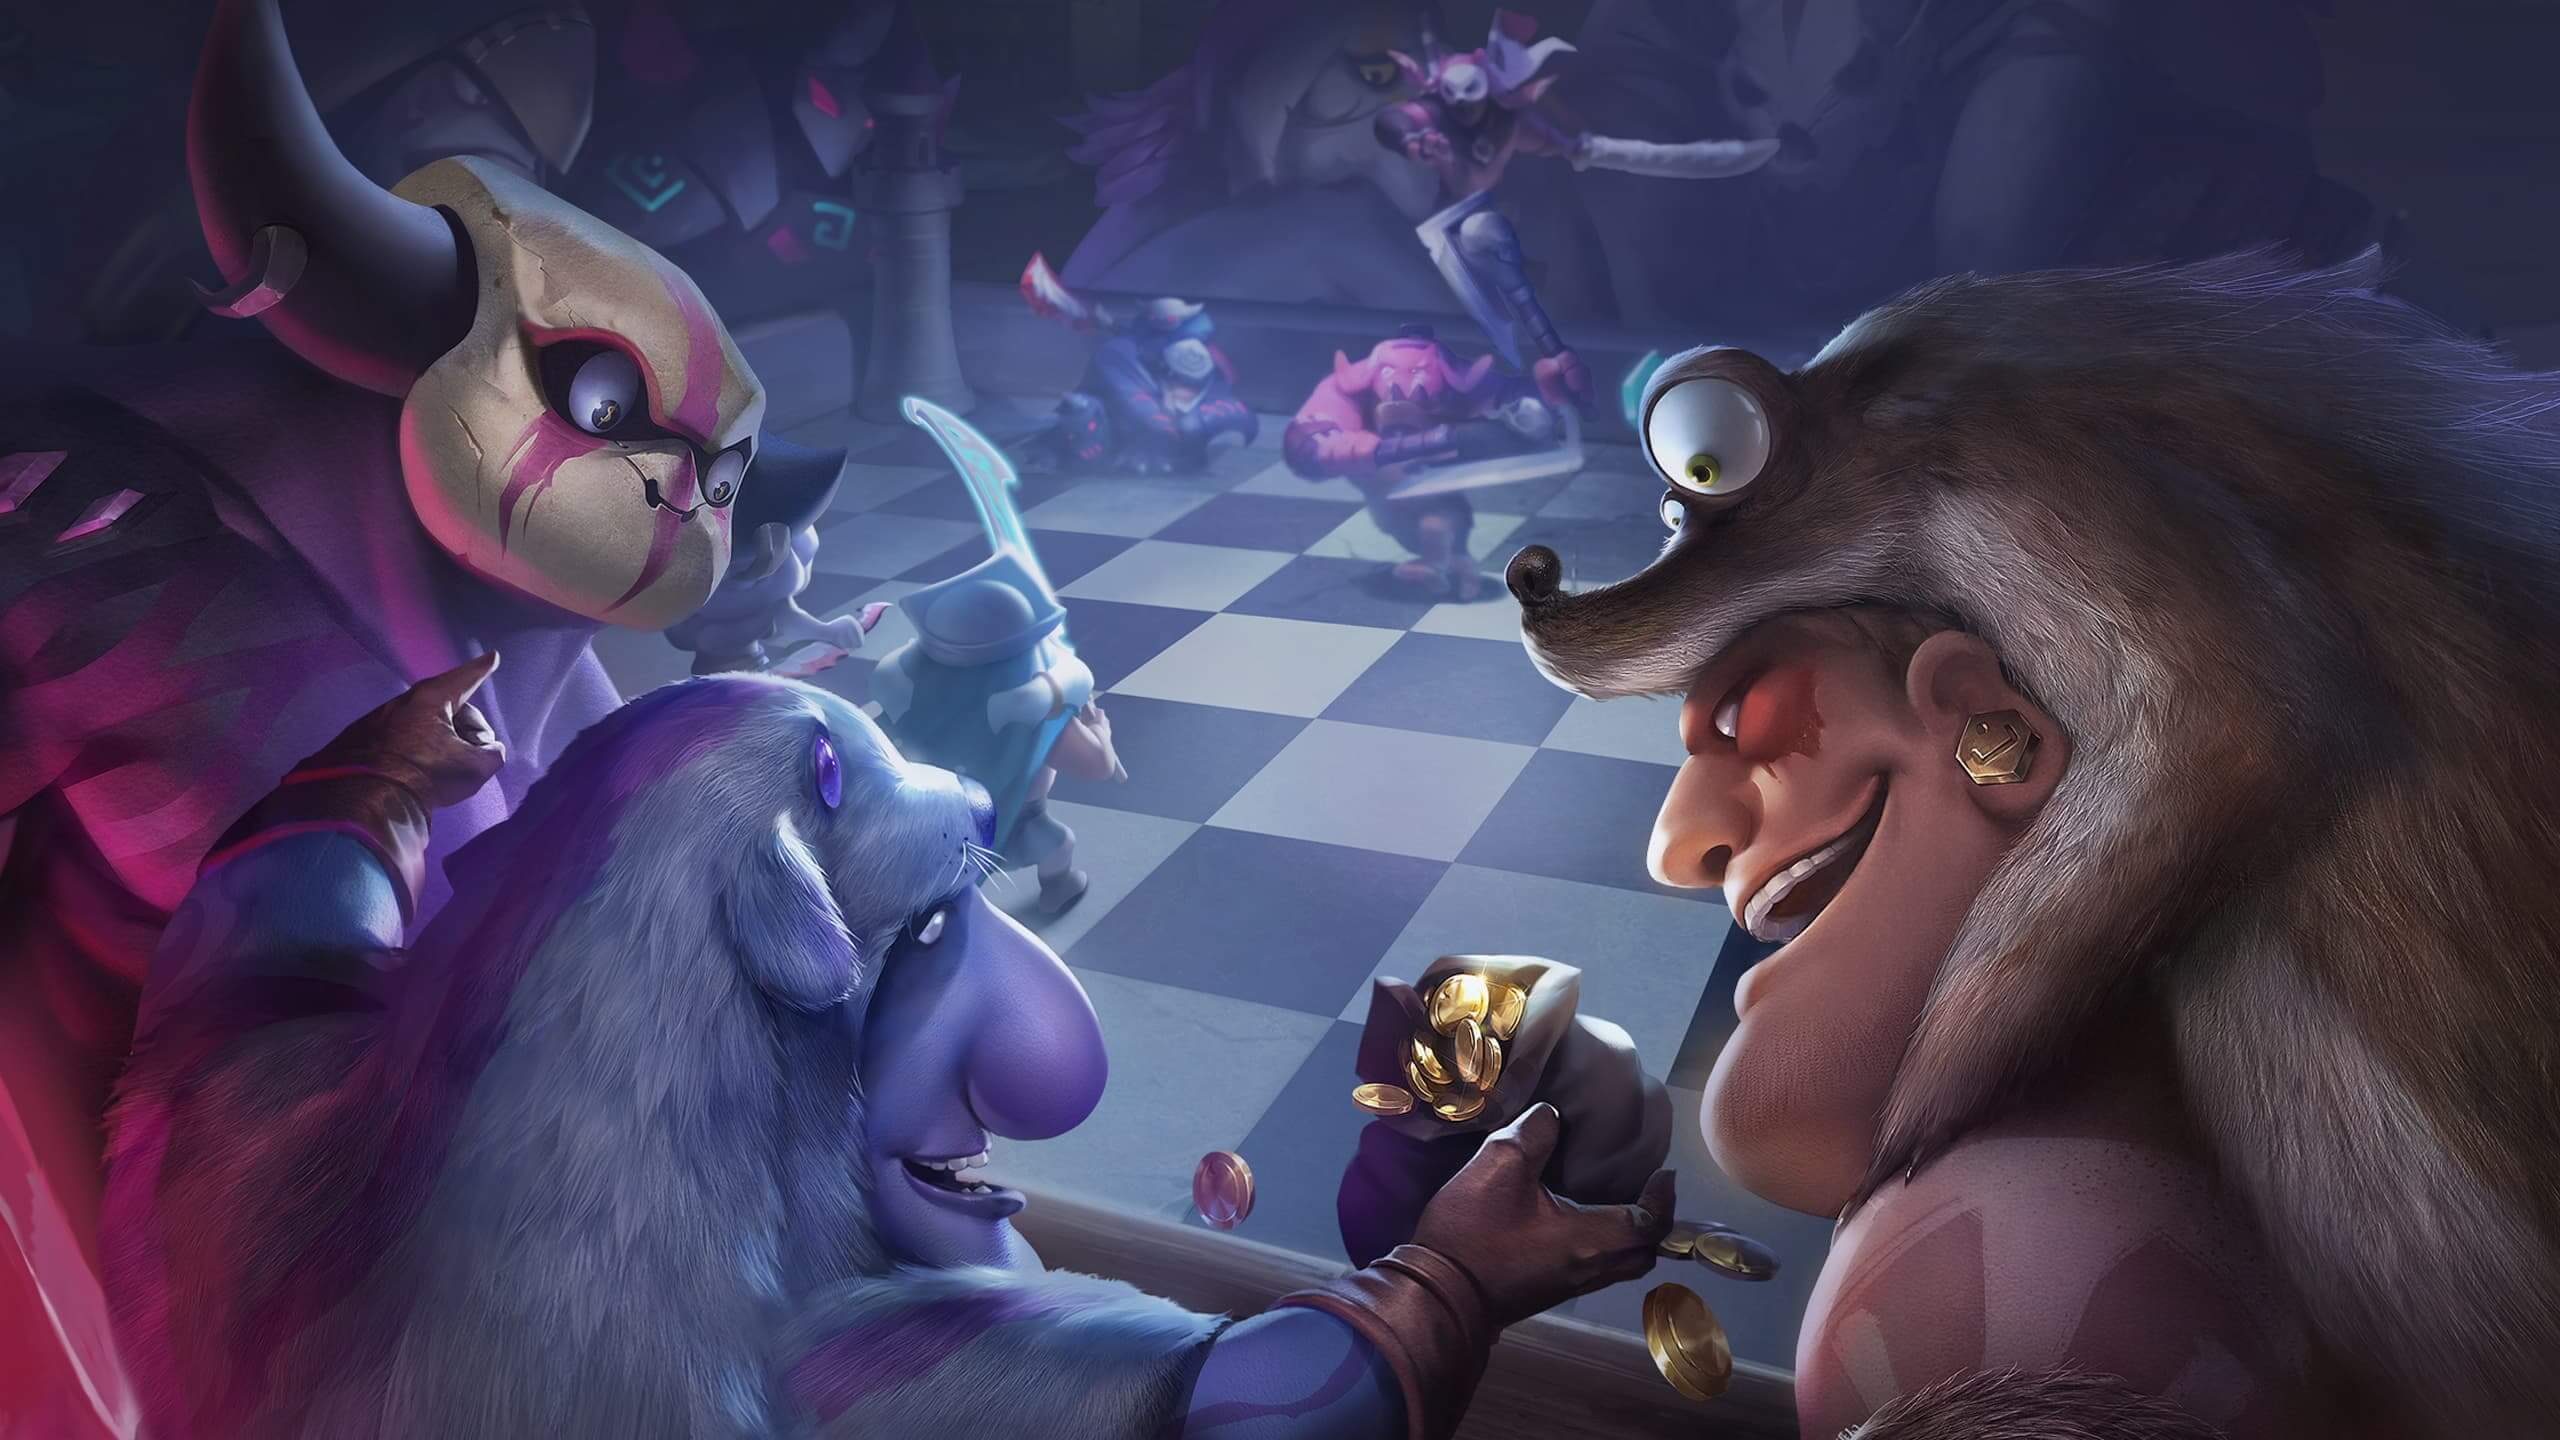 Auto Chess - Auto Chess is the Most Engaging Game of 2019!